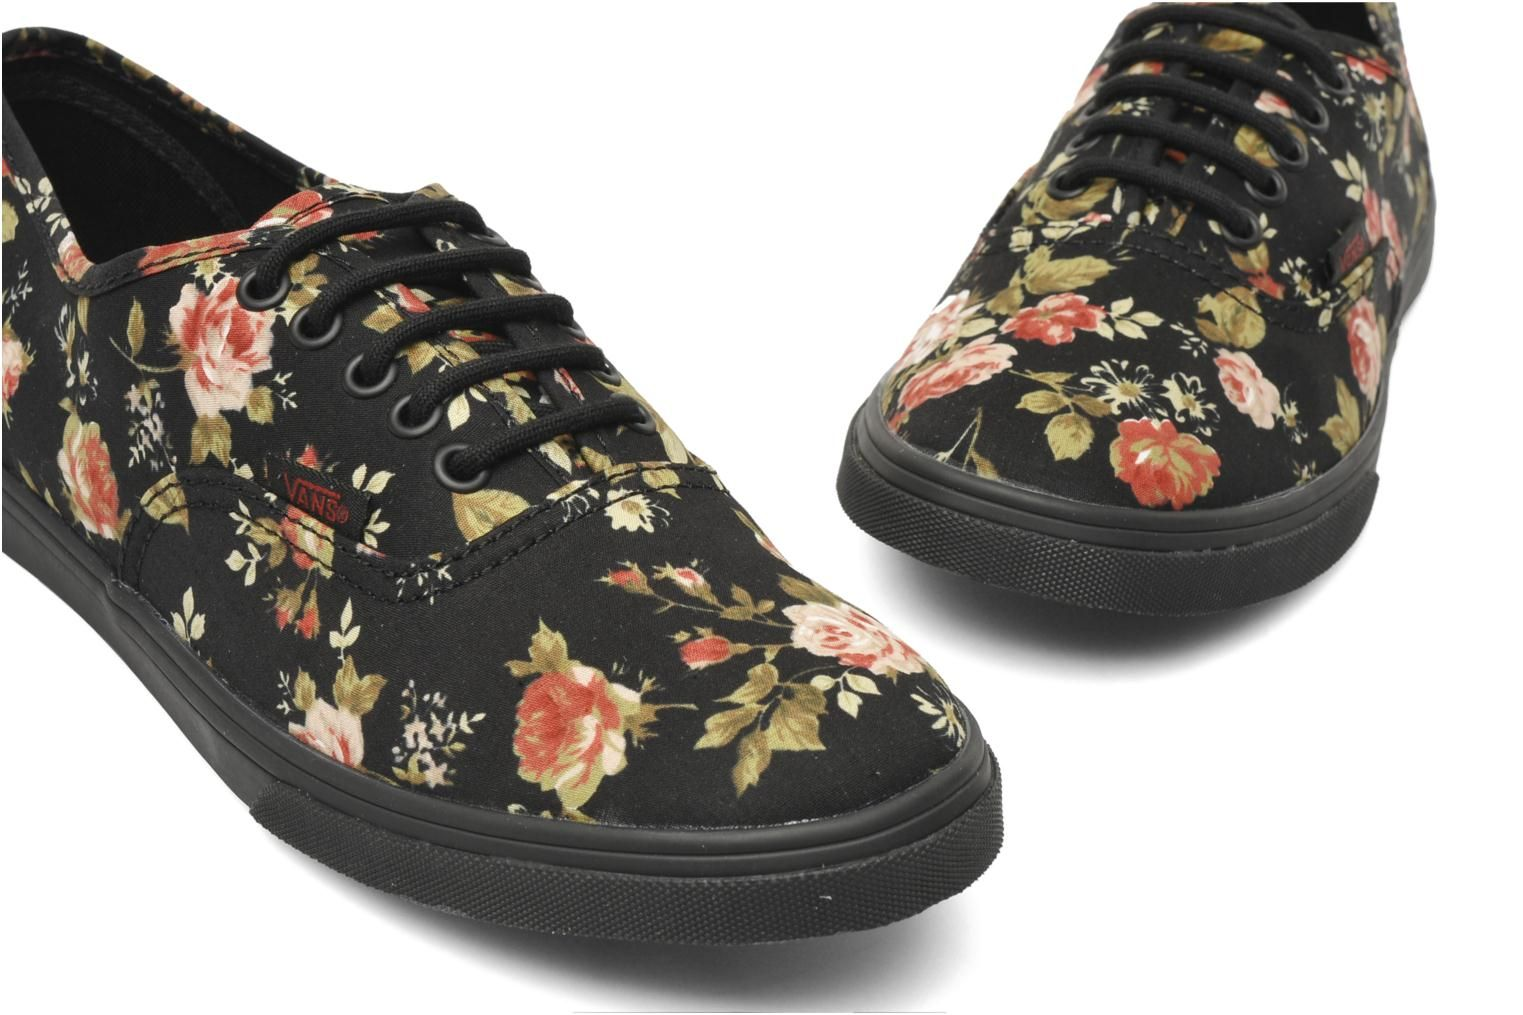 a1f0a072cf I have never wanted a pair of Vans so badly in my life.